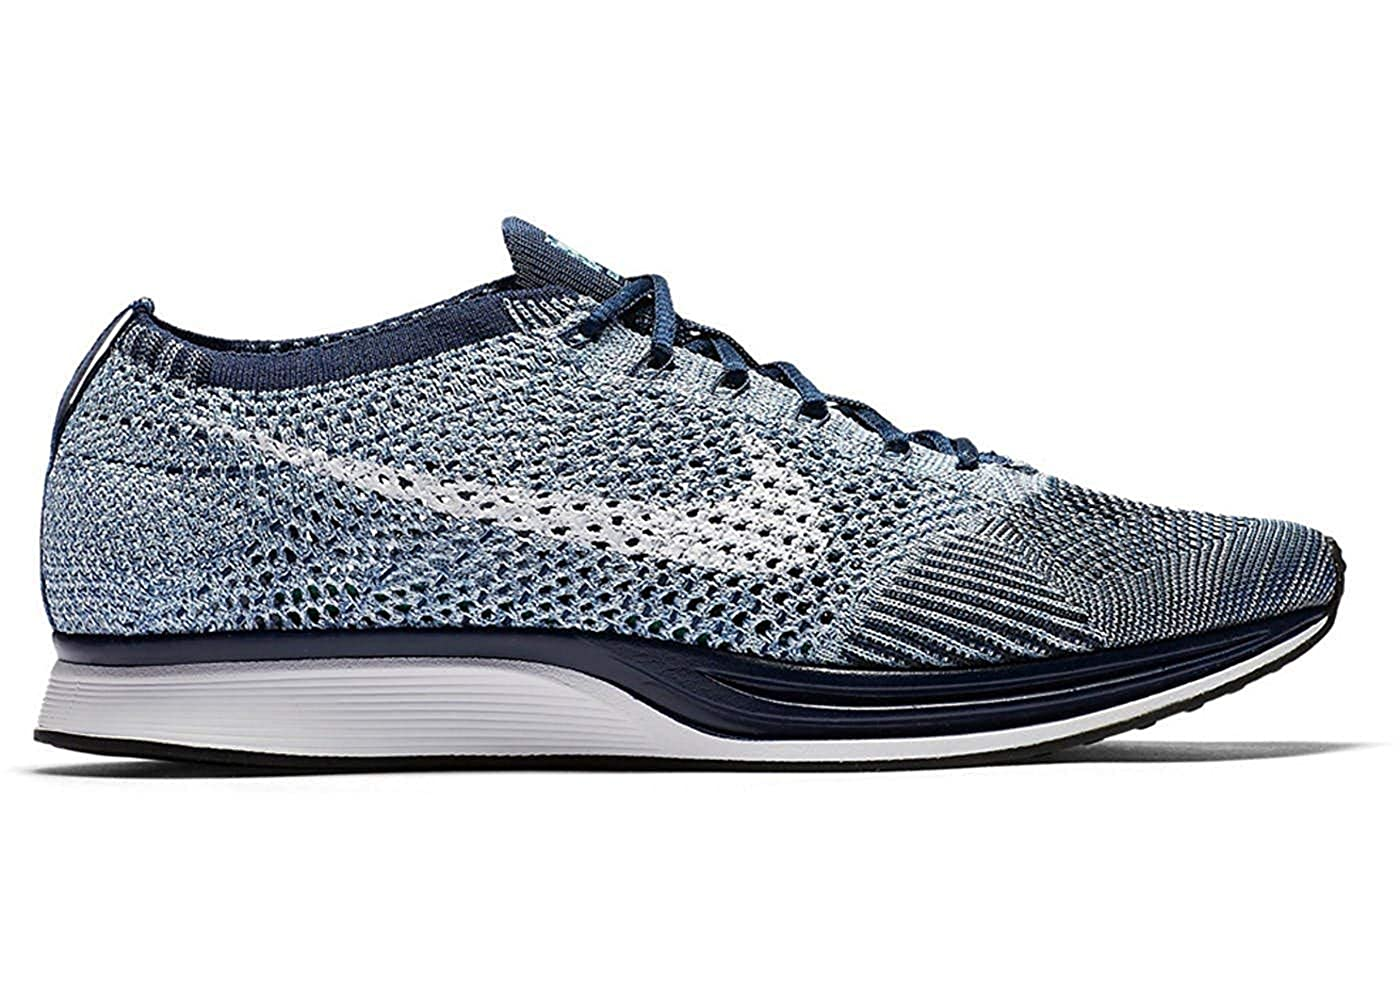 Nike Flyknit Racer Mens Running Trainers 862713 Sneakers Shoes   Amazon.co.uk  Shoes   Bags b984d51fe